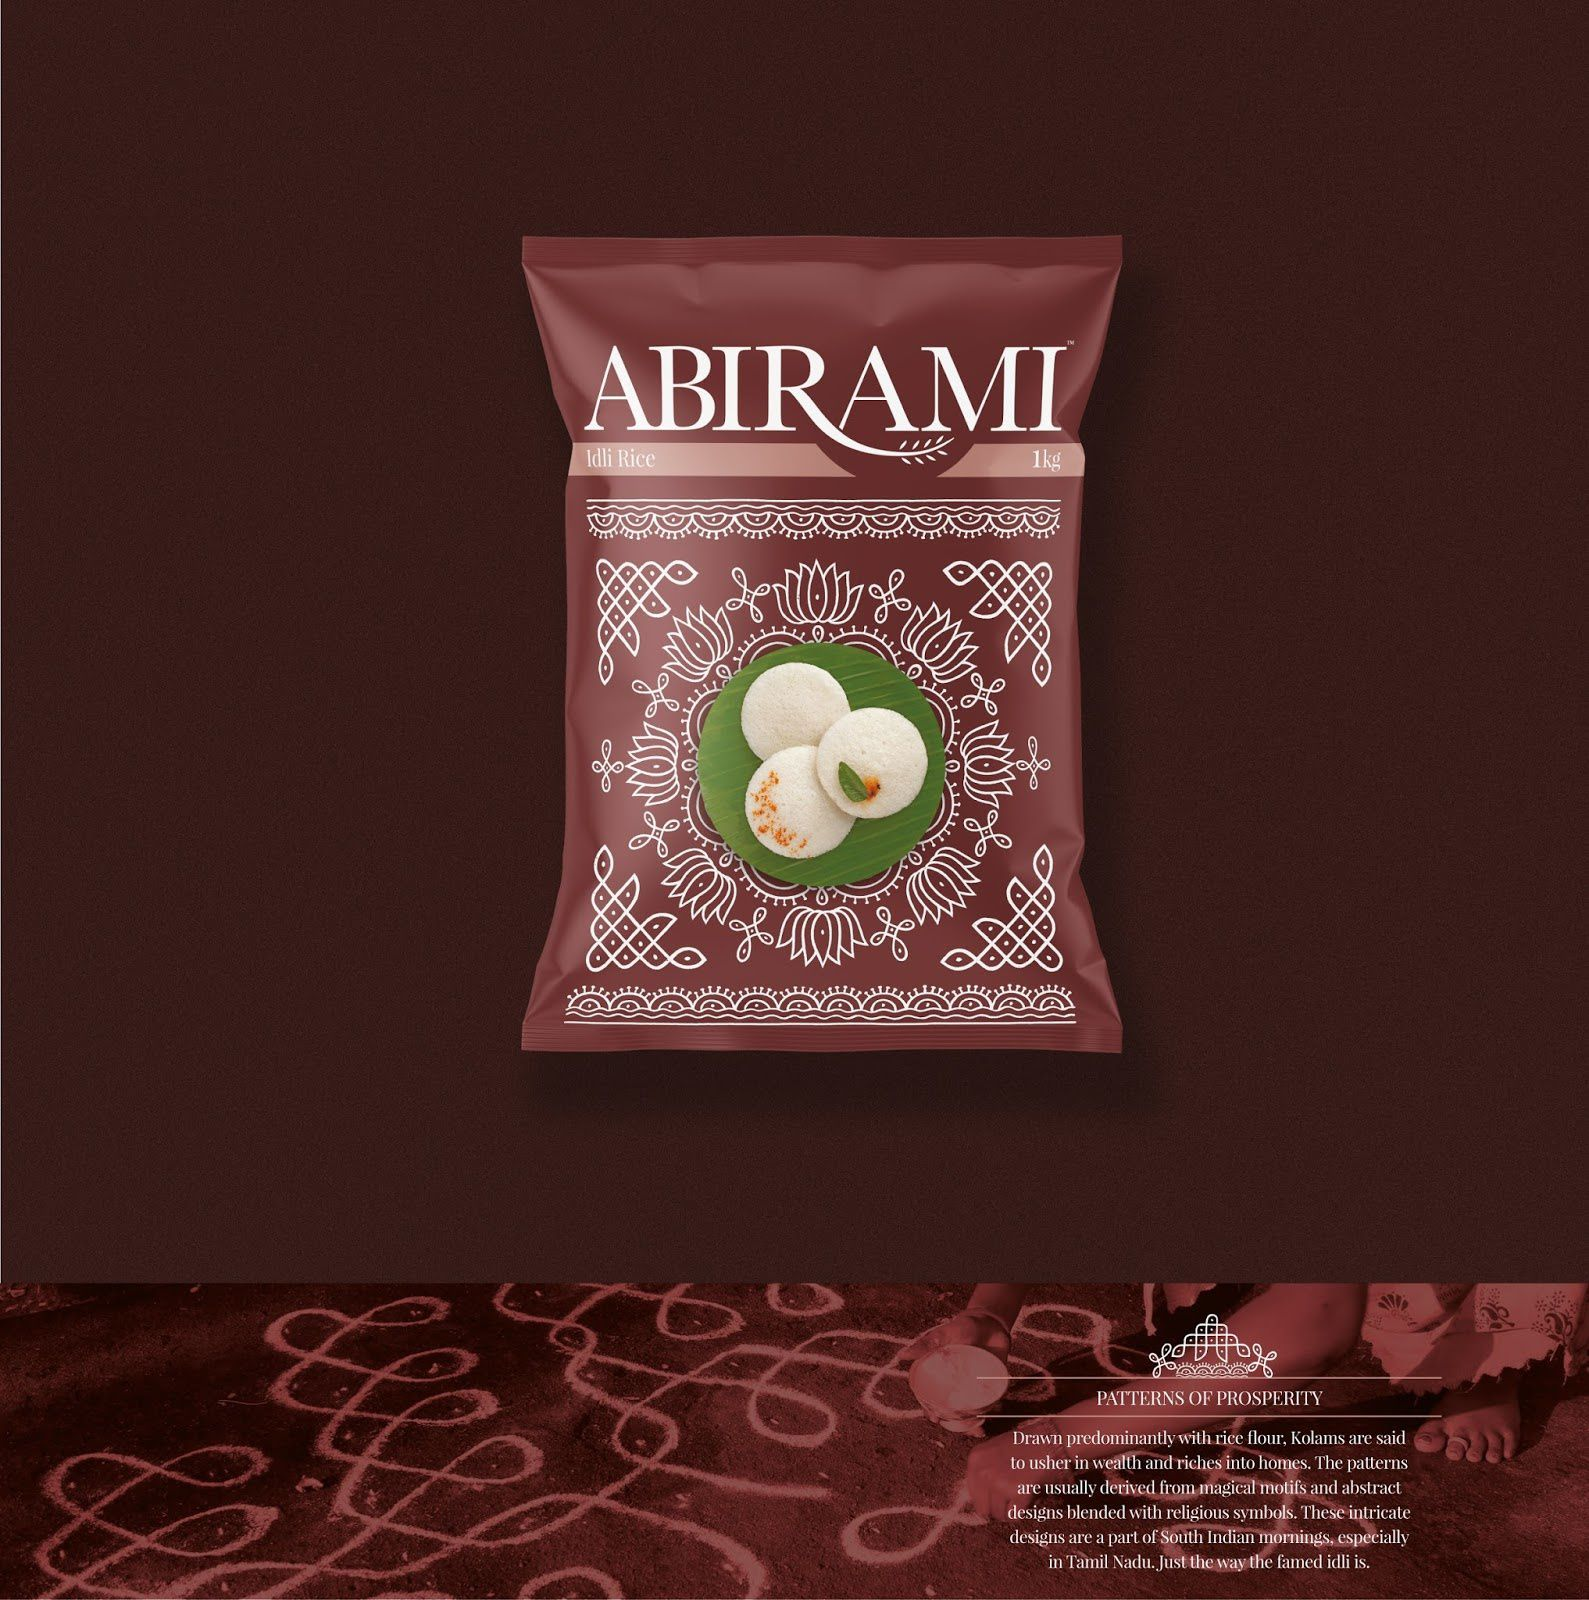 Abirami - Sri Varadaraja Food Exports (riz) I Design : Rubecon Communications, Inde (mars 2017)